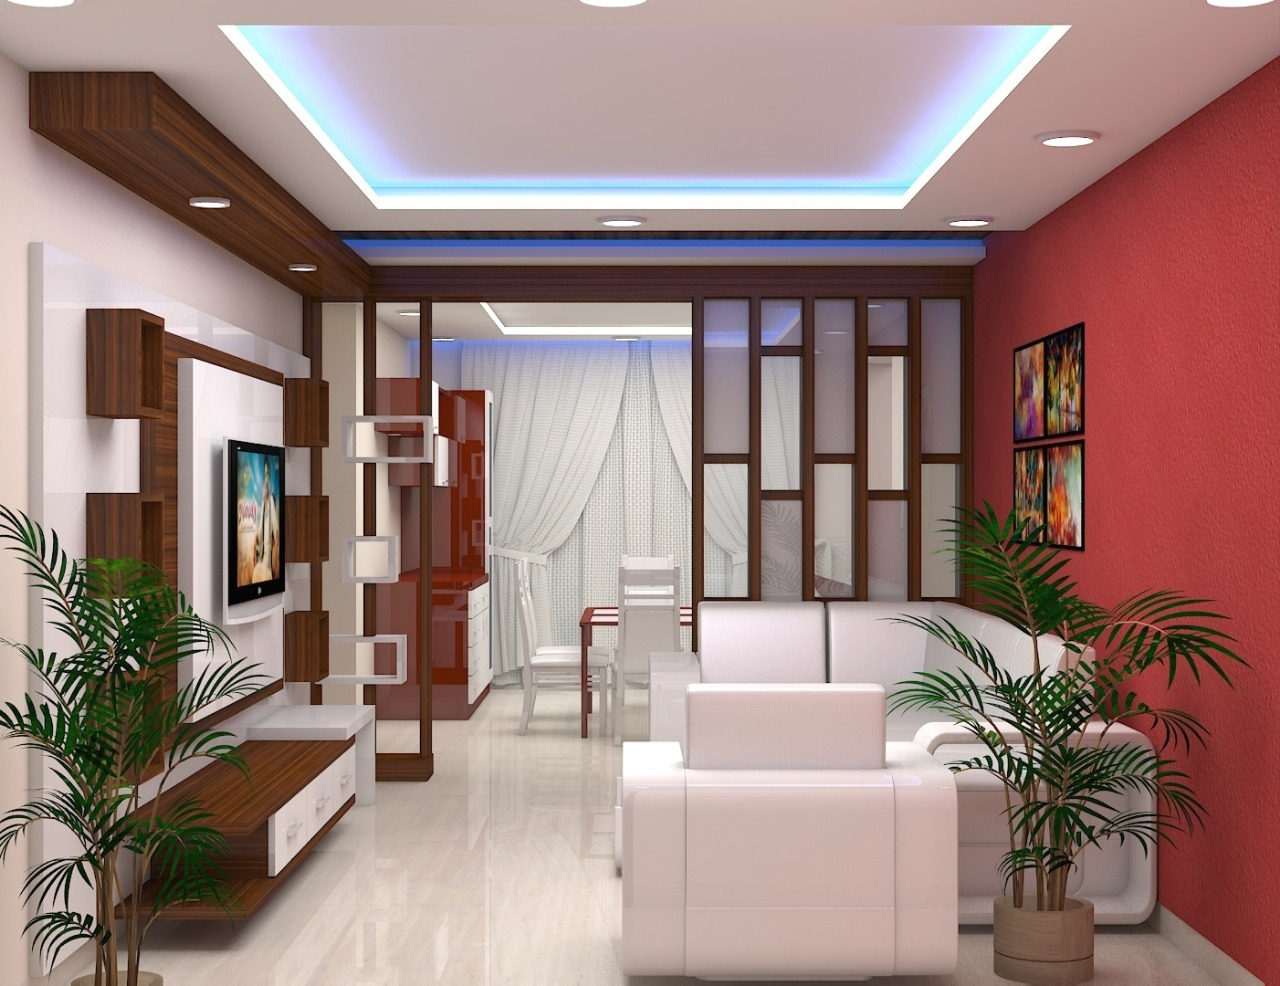 R7 INTERIORS, INTERIOR DESIGNER IN HYDERABAD, INTERIOR DESIGNER IN UPPAL, INTERIOR DESIGNER IN TOLICHOWKI,INTERIOR DESIGNER IN UPPAL, INTERIOR DESIGNER IN MANIKONDA, INTERIOR DESIGNER IN L B NAGAR,